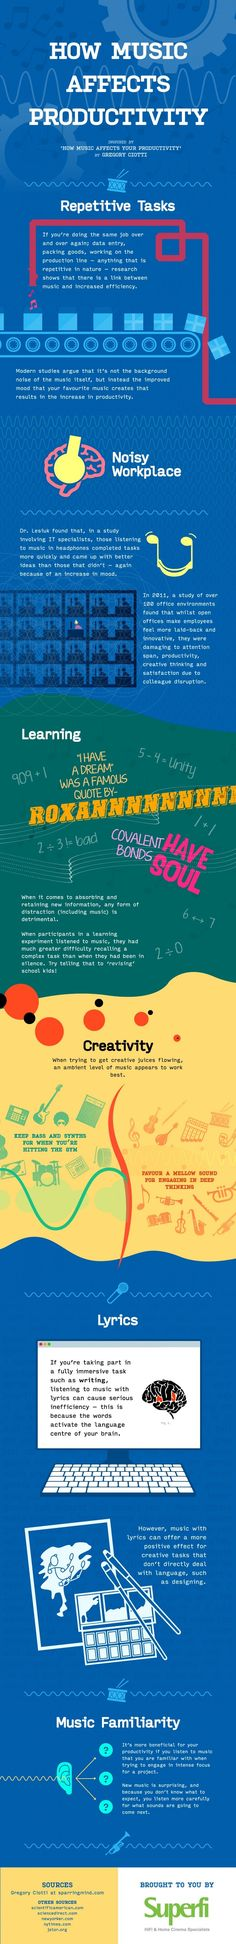 Career Management - How Your Music Choices Affect Your Productivity [Infographic] : MarketingProfs Article